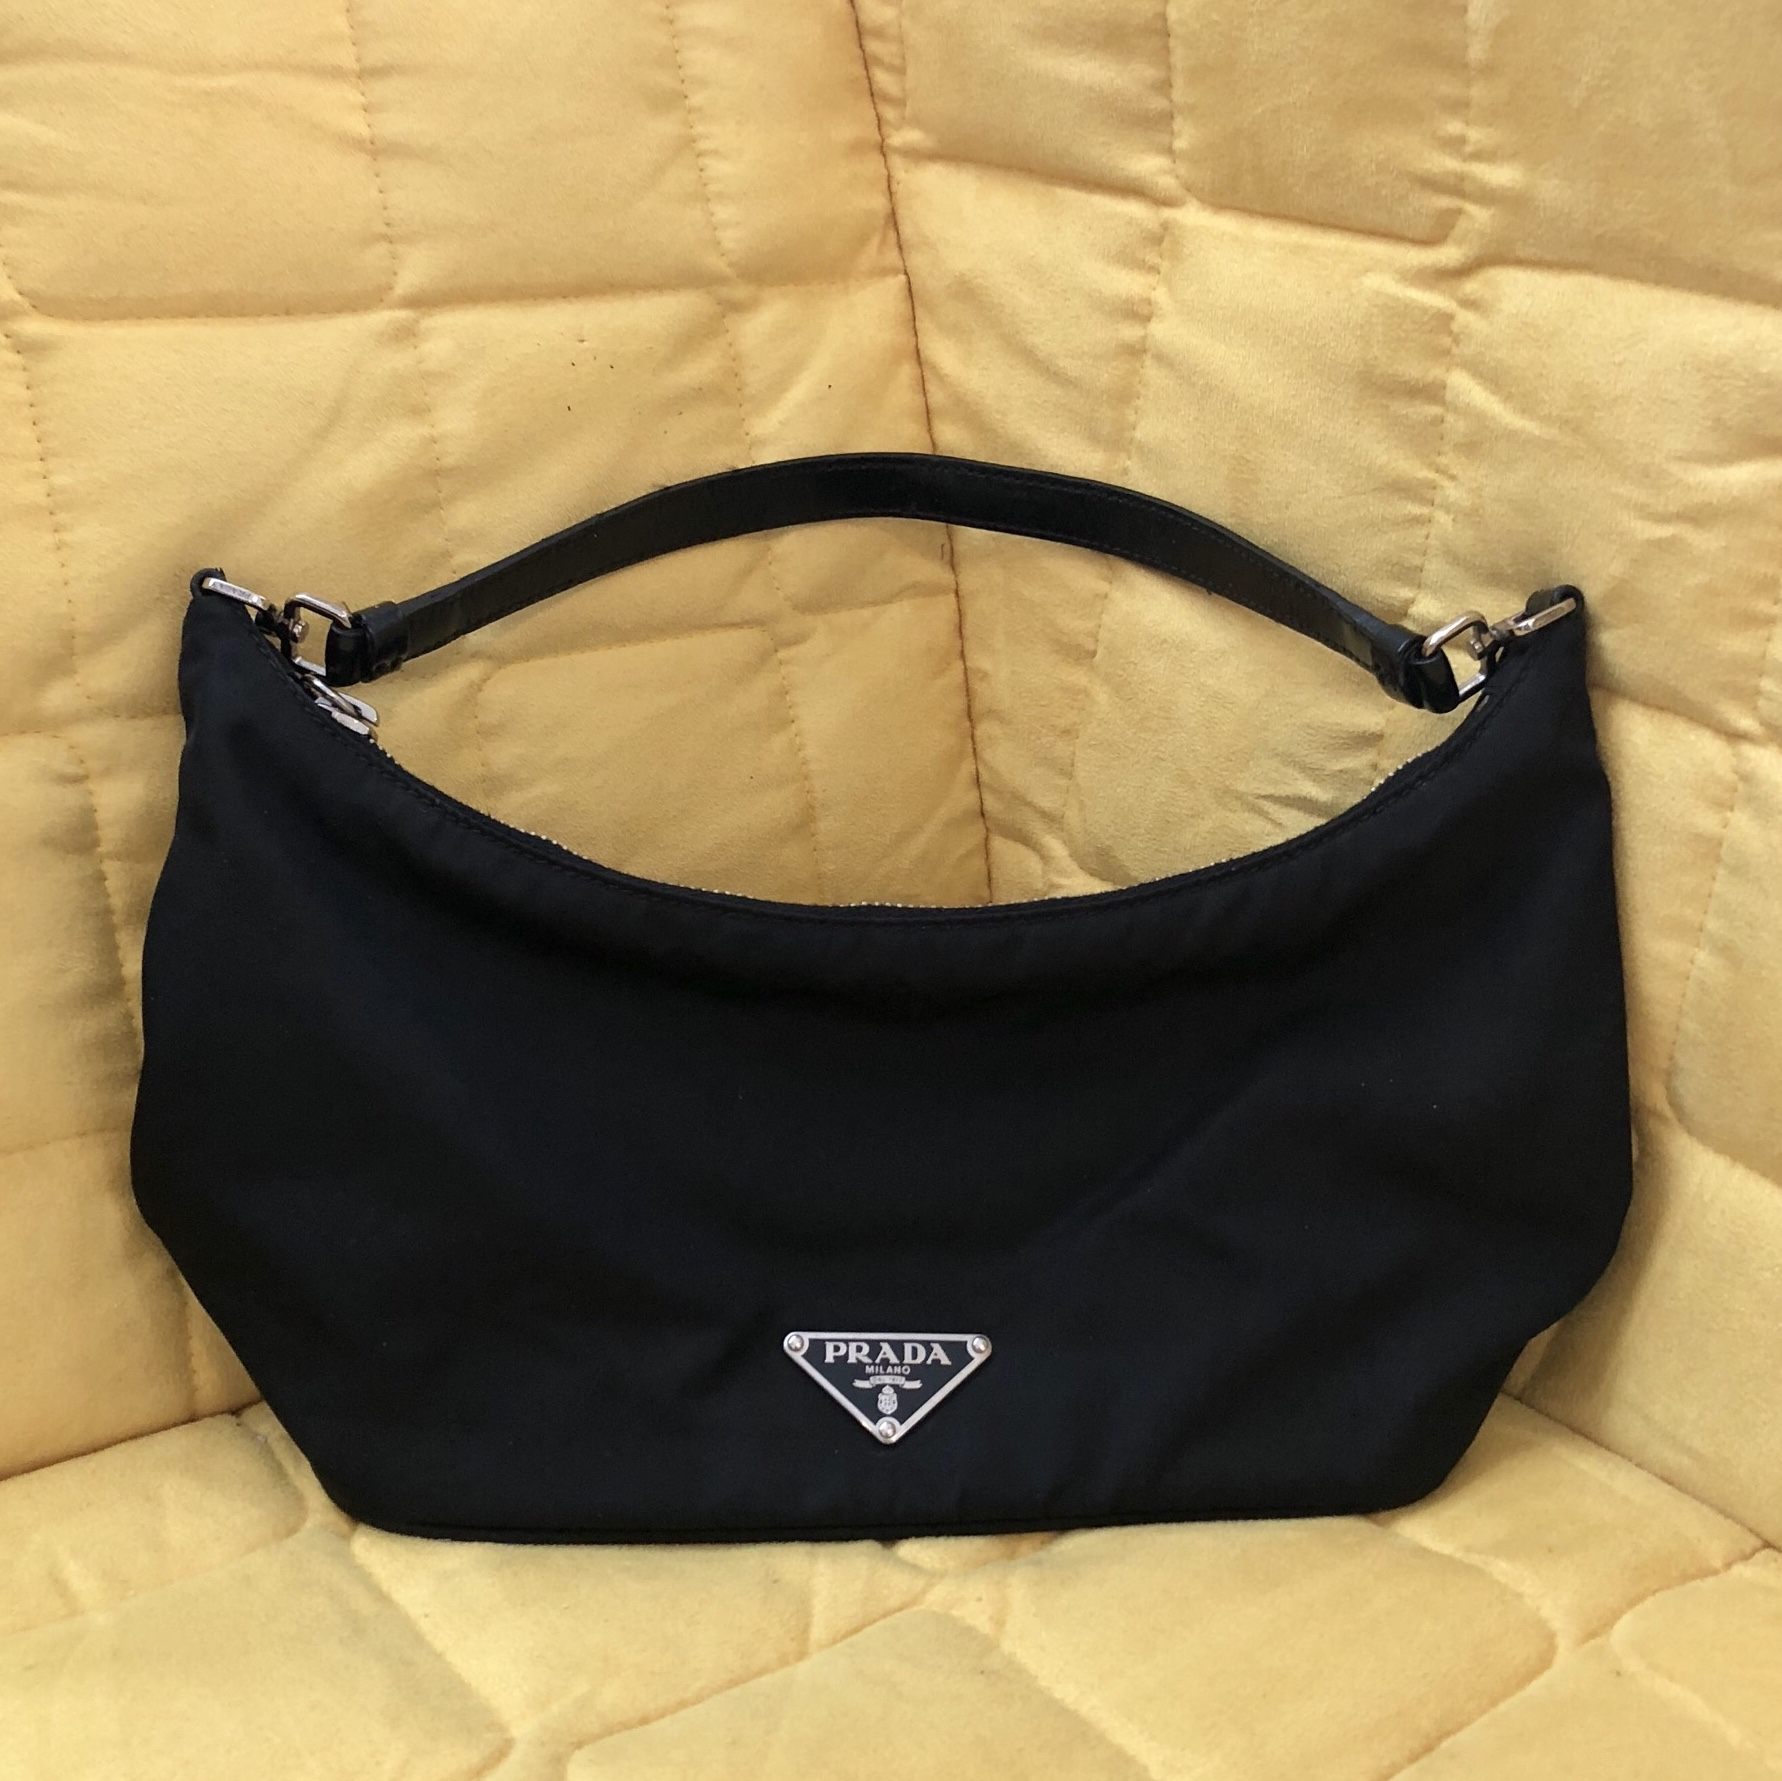 69d946a3cd23 ... cheap vintage prada nylon shoulder bag authentic prada small and depop  30170 3201e